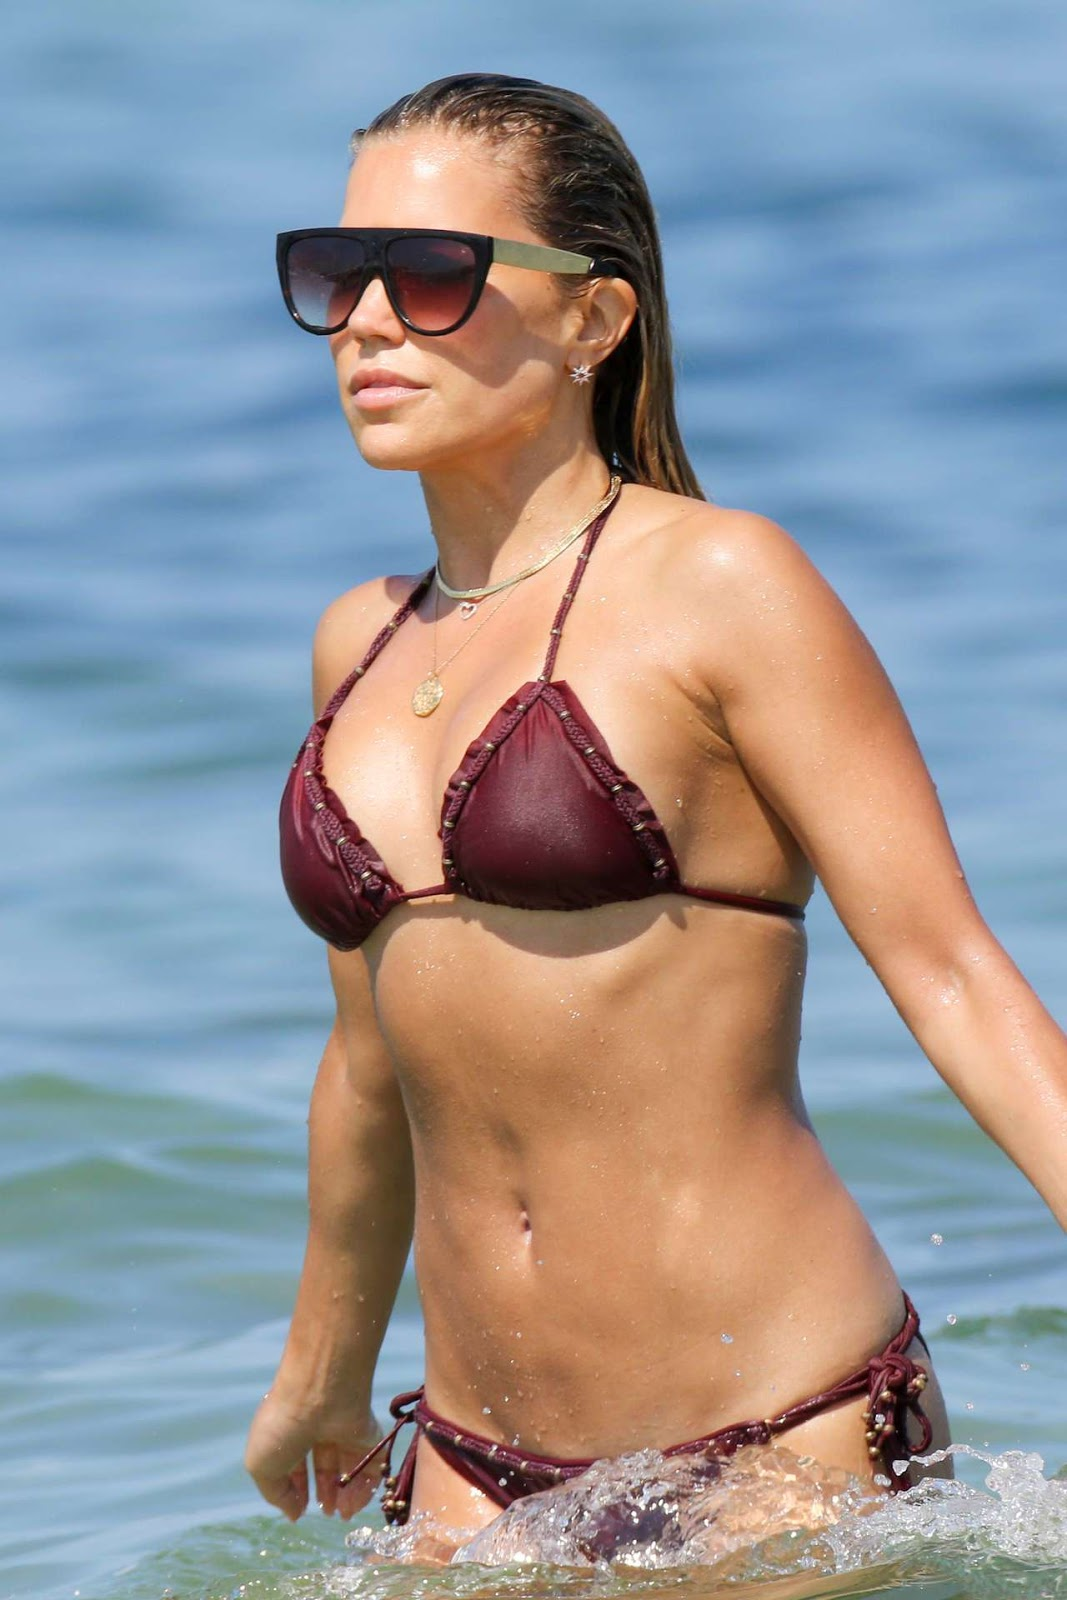 Dutch model Sylvie Meis in Bikini on the Beach in Saint Tropez